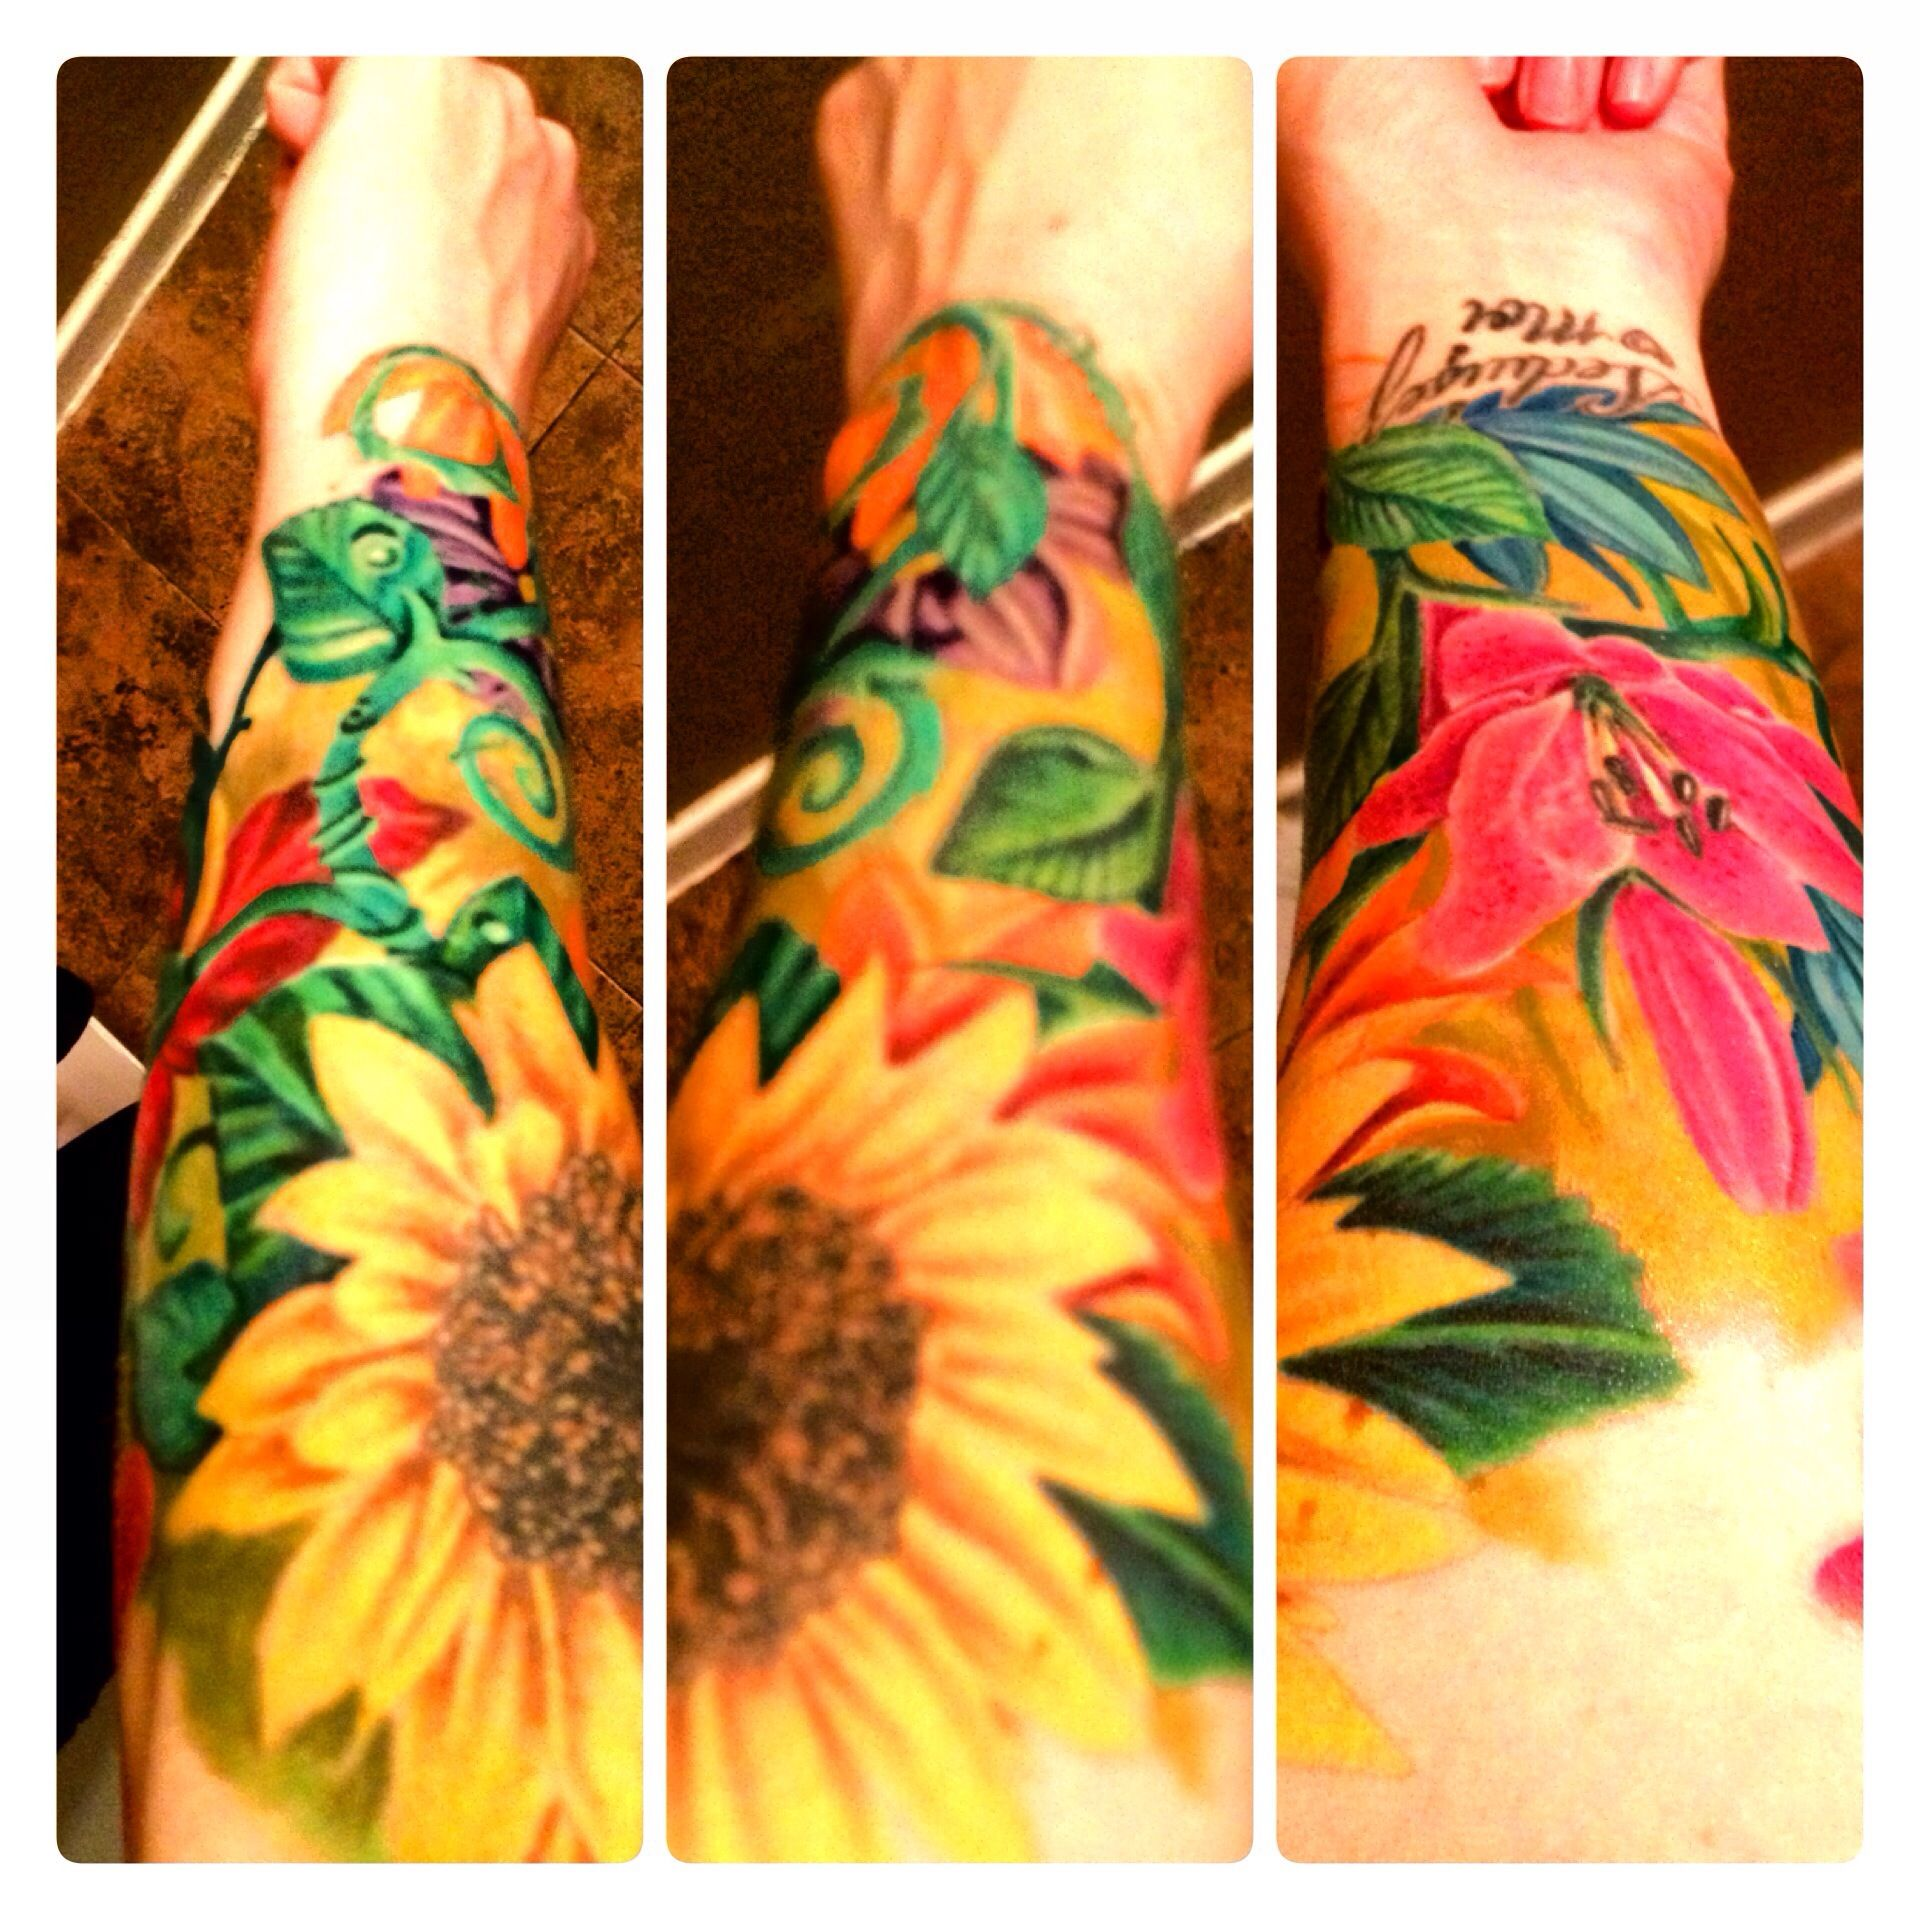 80 Bright Color Tattoo Design Ideas: Floral Tattoo. Flower Sleeve. Bright Colors